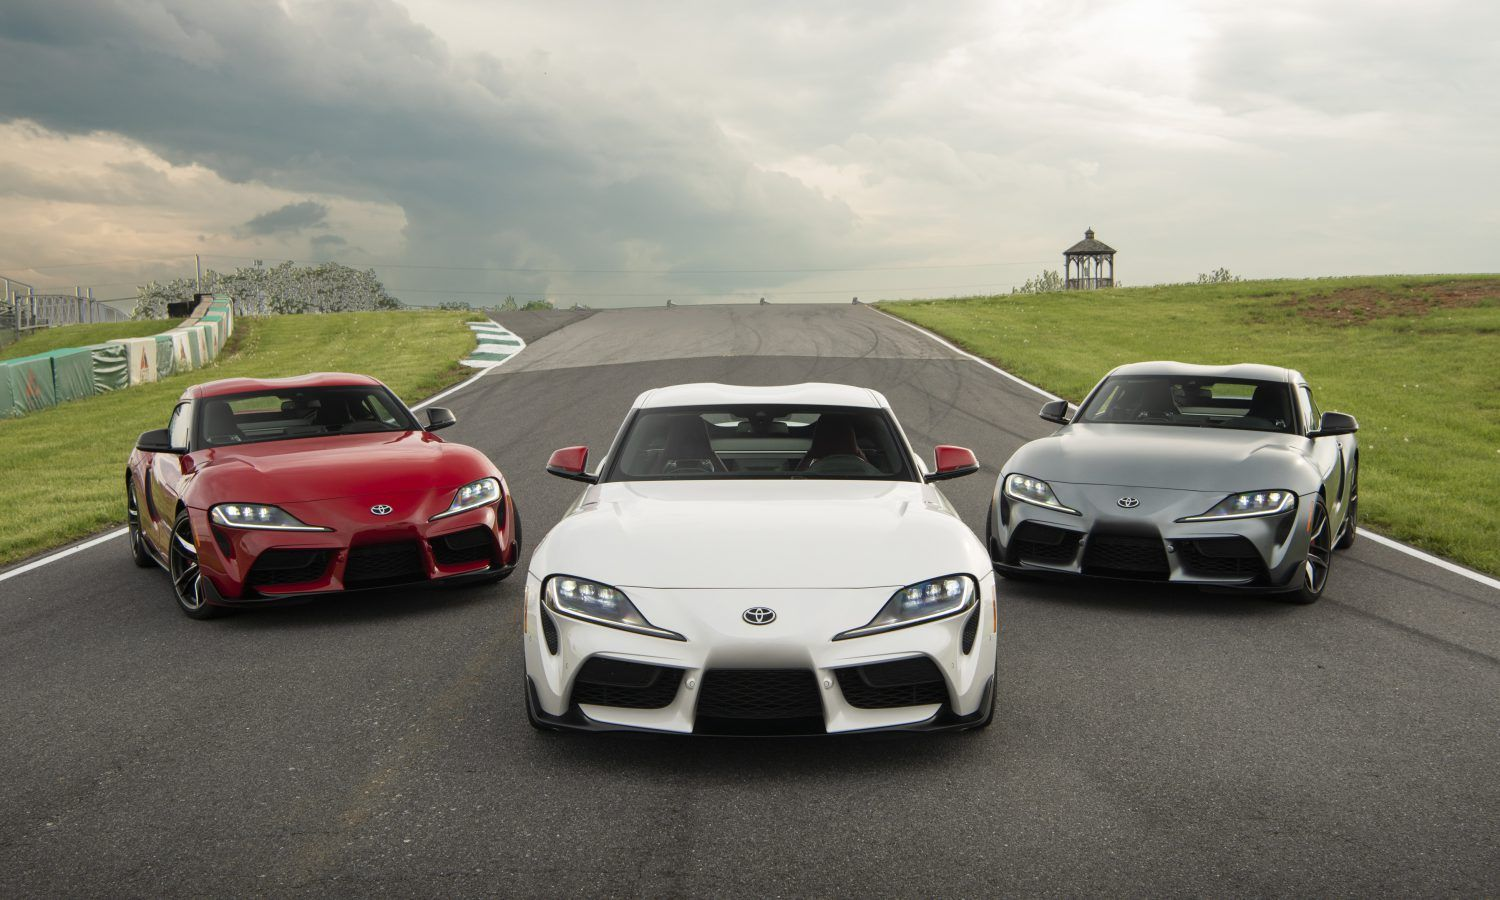 Comments on: The 2020 Toyota Supra Is Finally in Dealerships